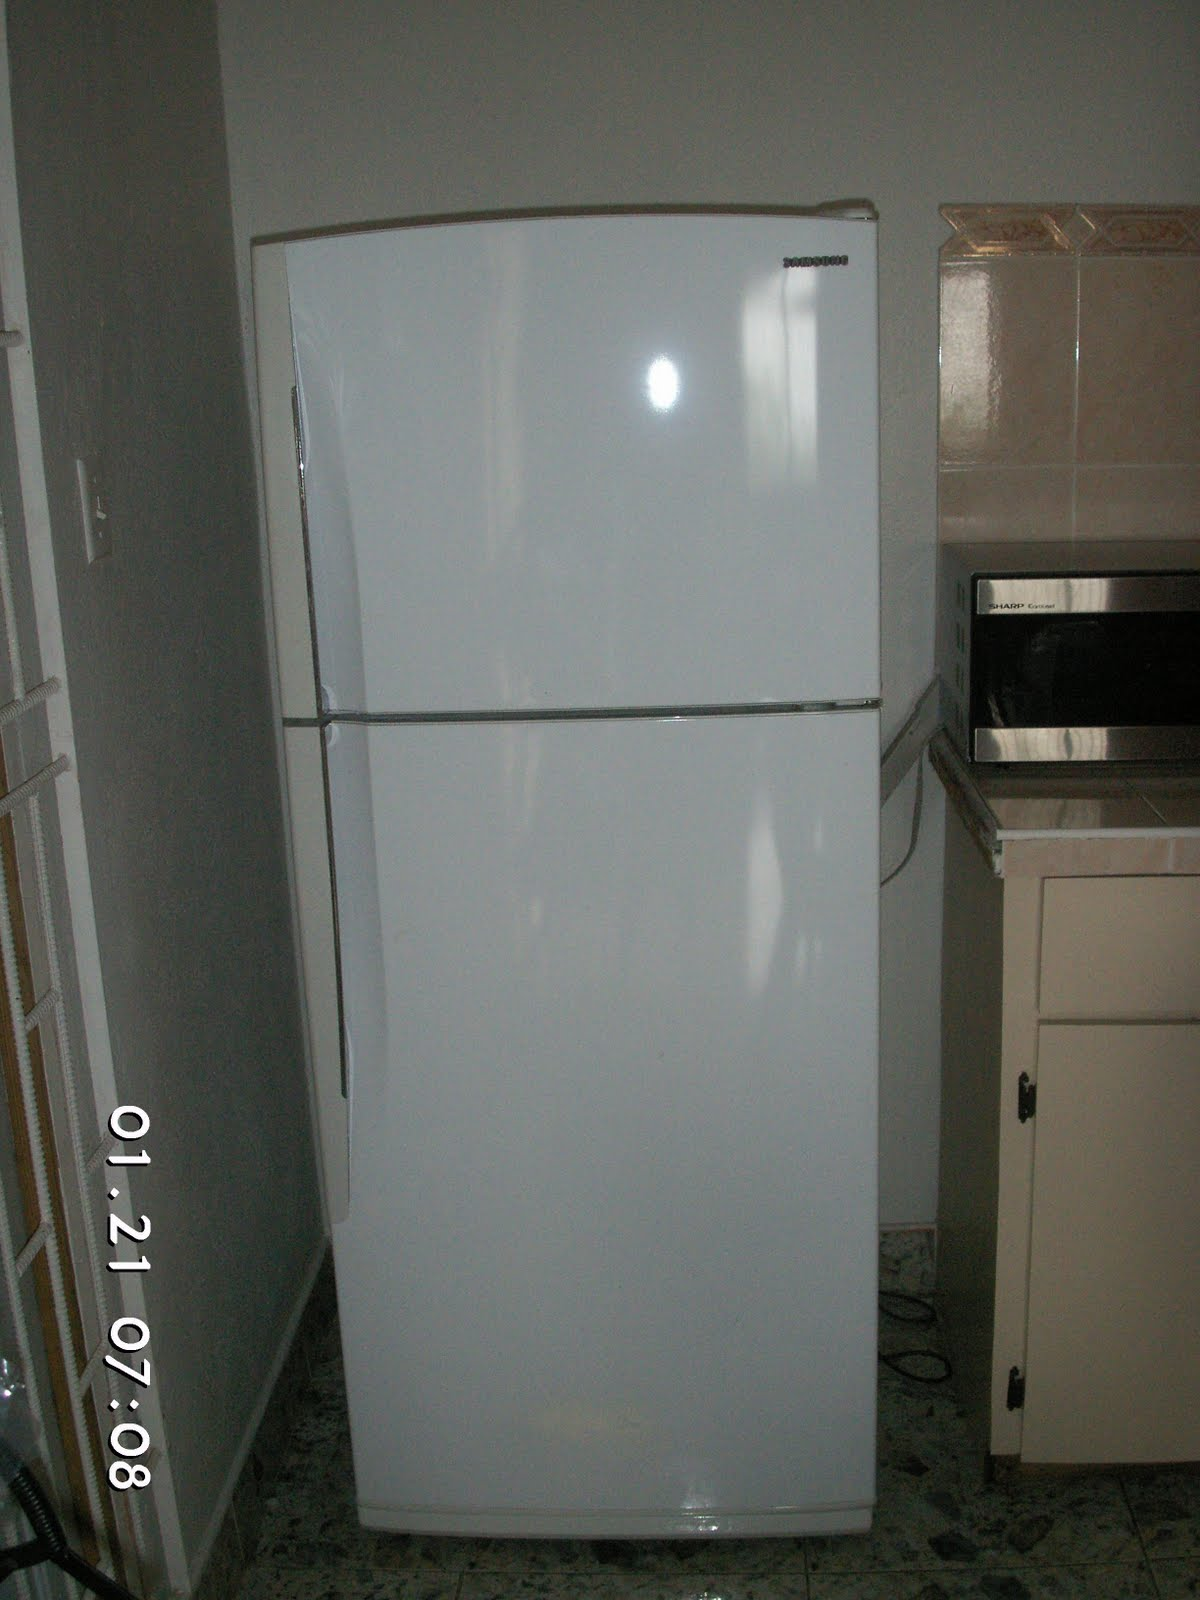 Michy S Going Away Sale Samsung Refrigerator